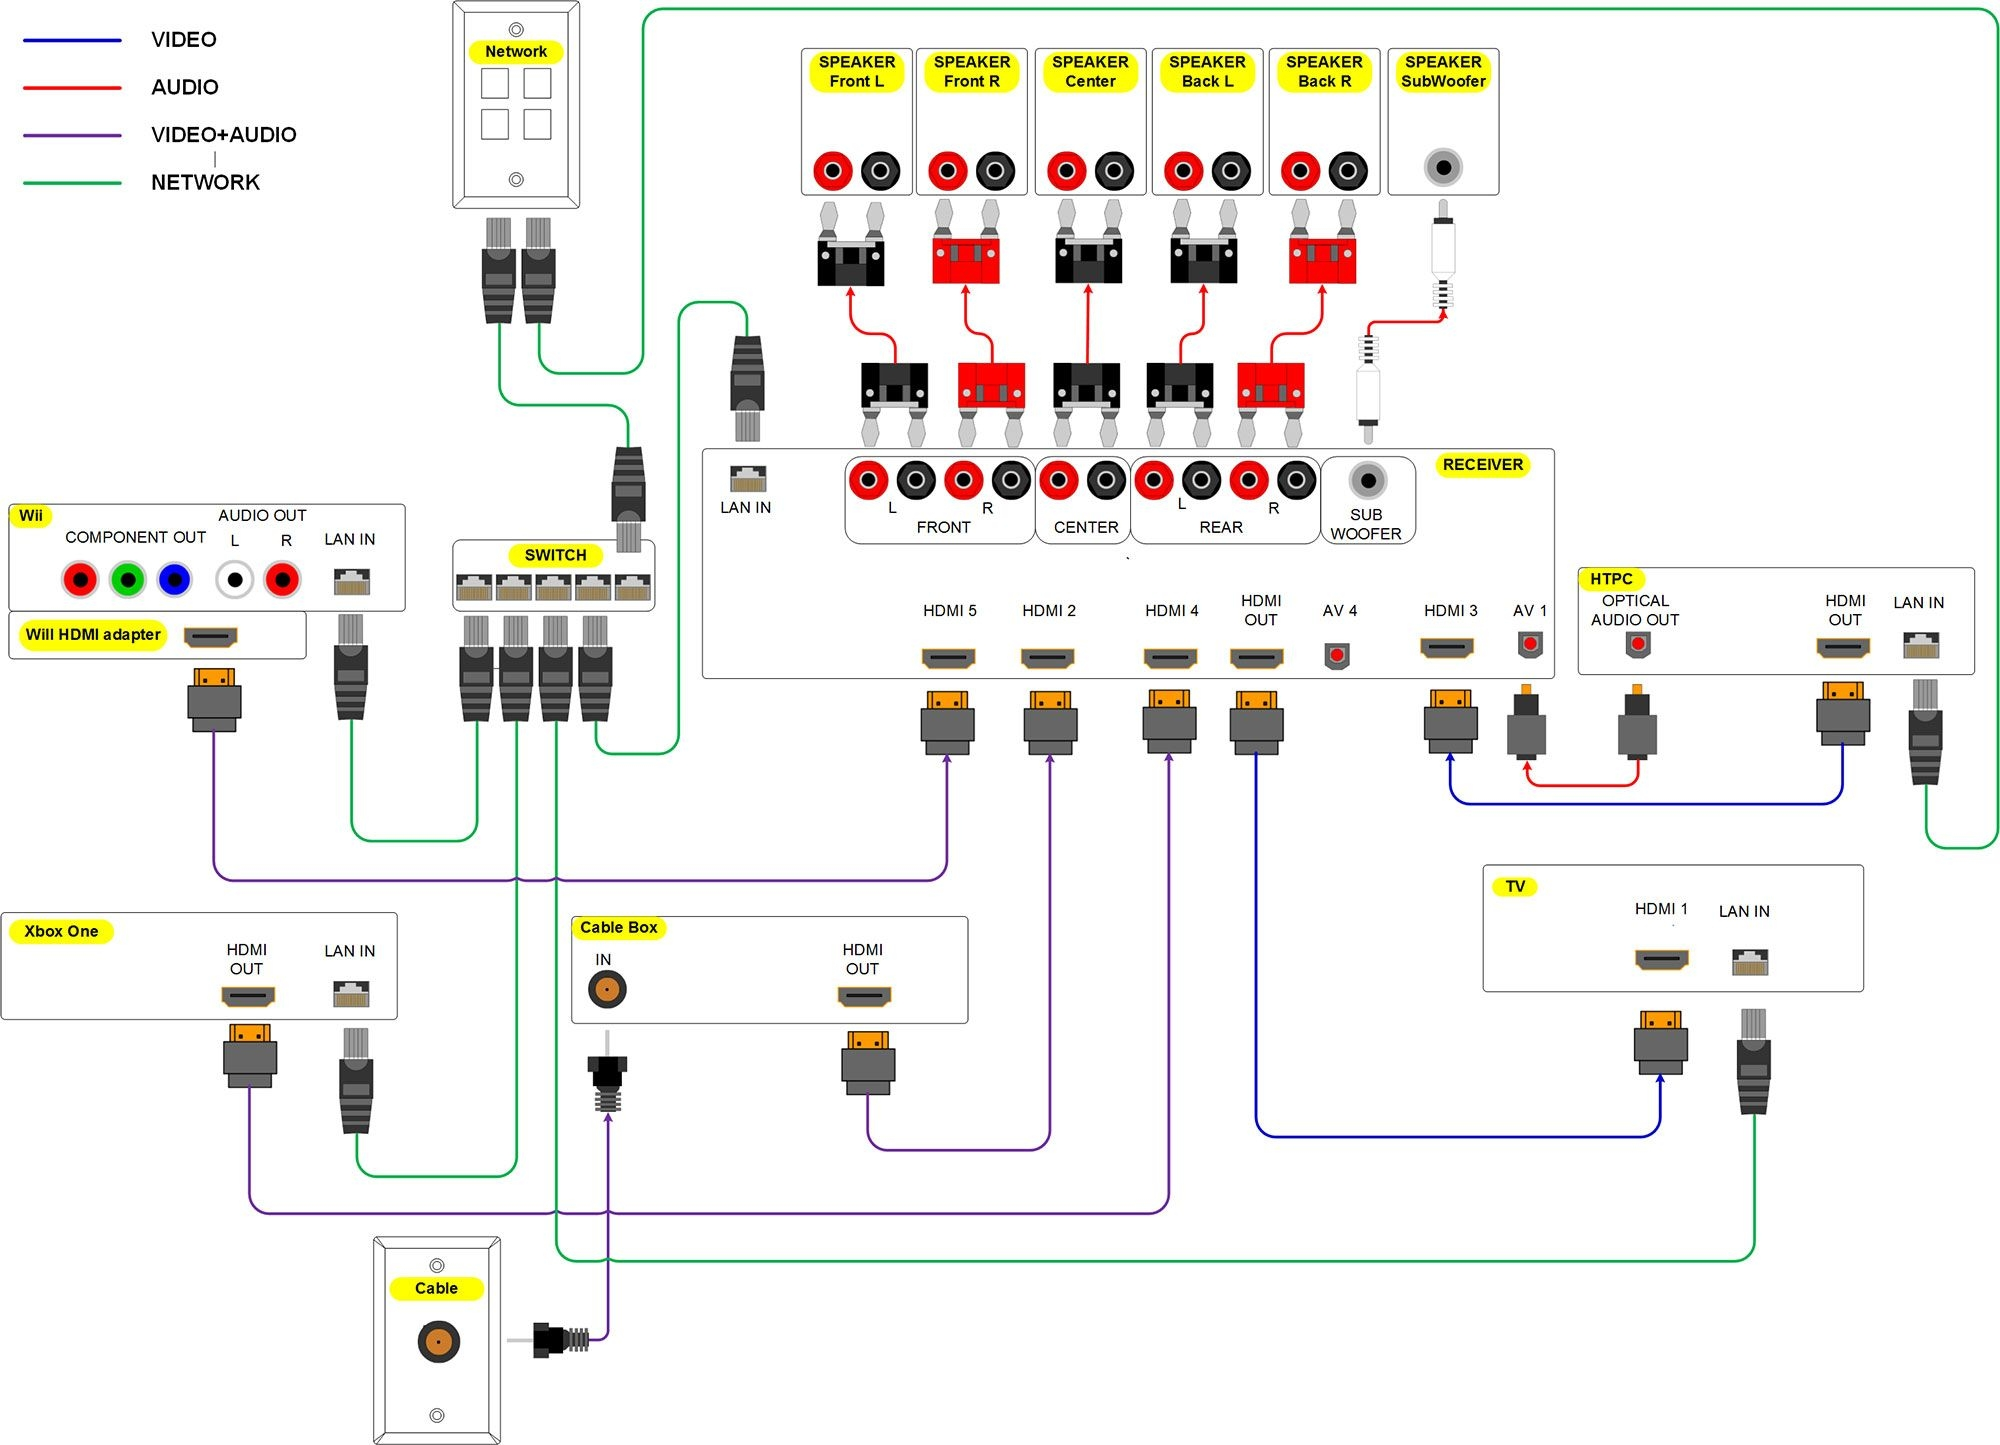 home theater wiring diagram Download-Home Theater Wiring Diagram click it to see the big 2000 pixel wide 17-c